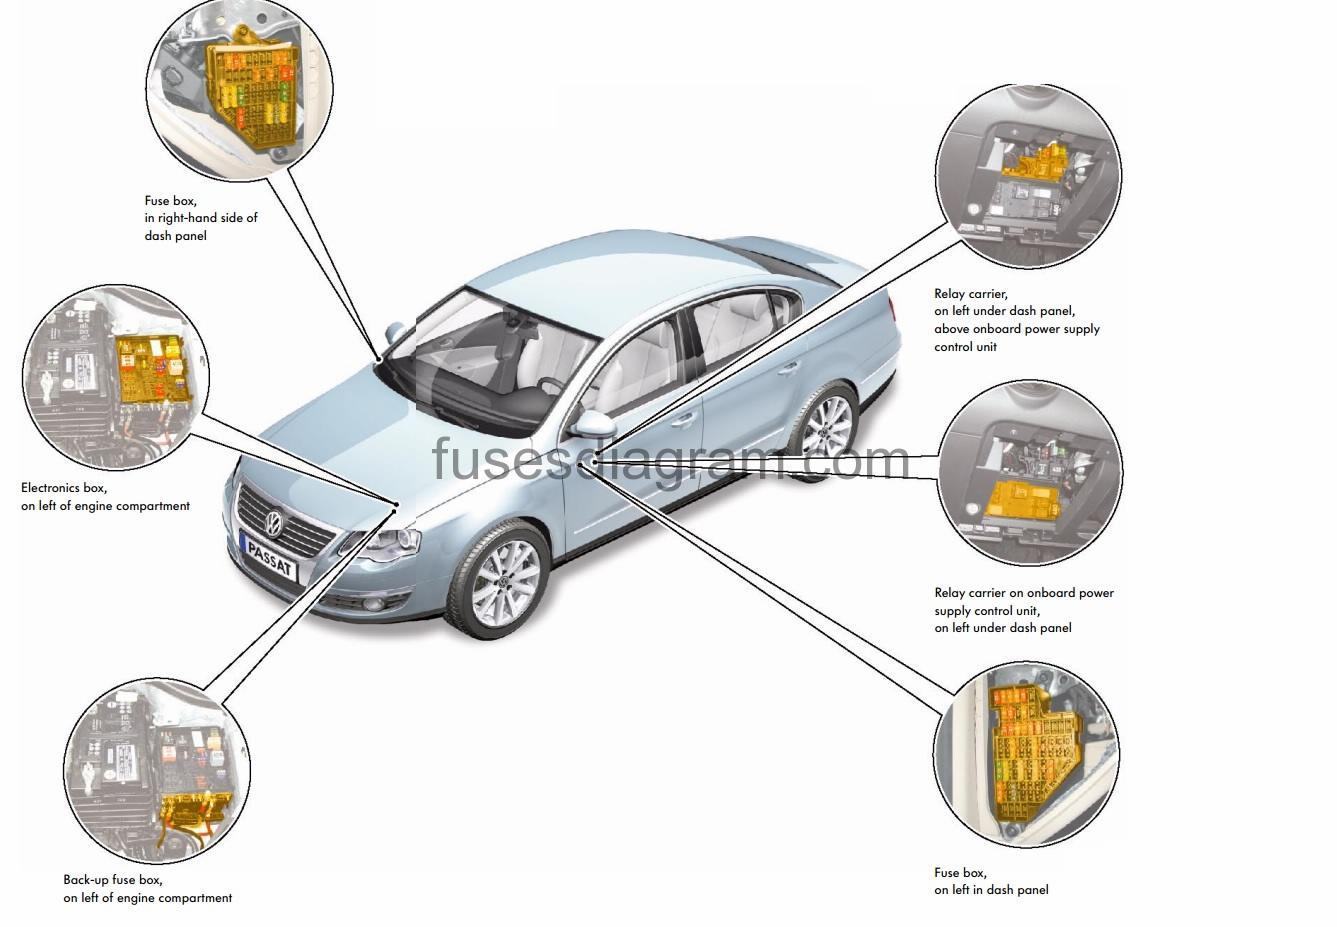 Fuse box Volkswagen Passat B6 | 2010 Passat Wagon Fuse Diagram |  | Fuses box diagram